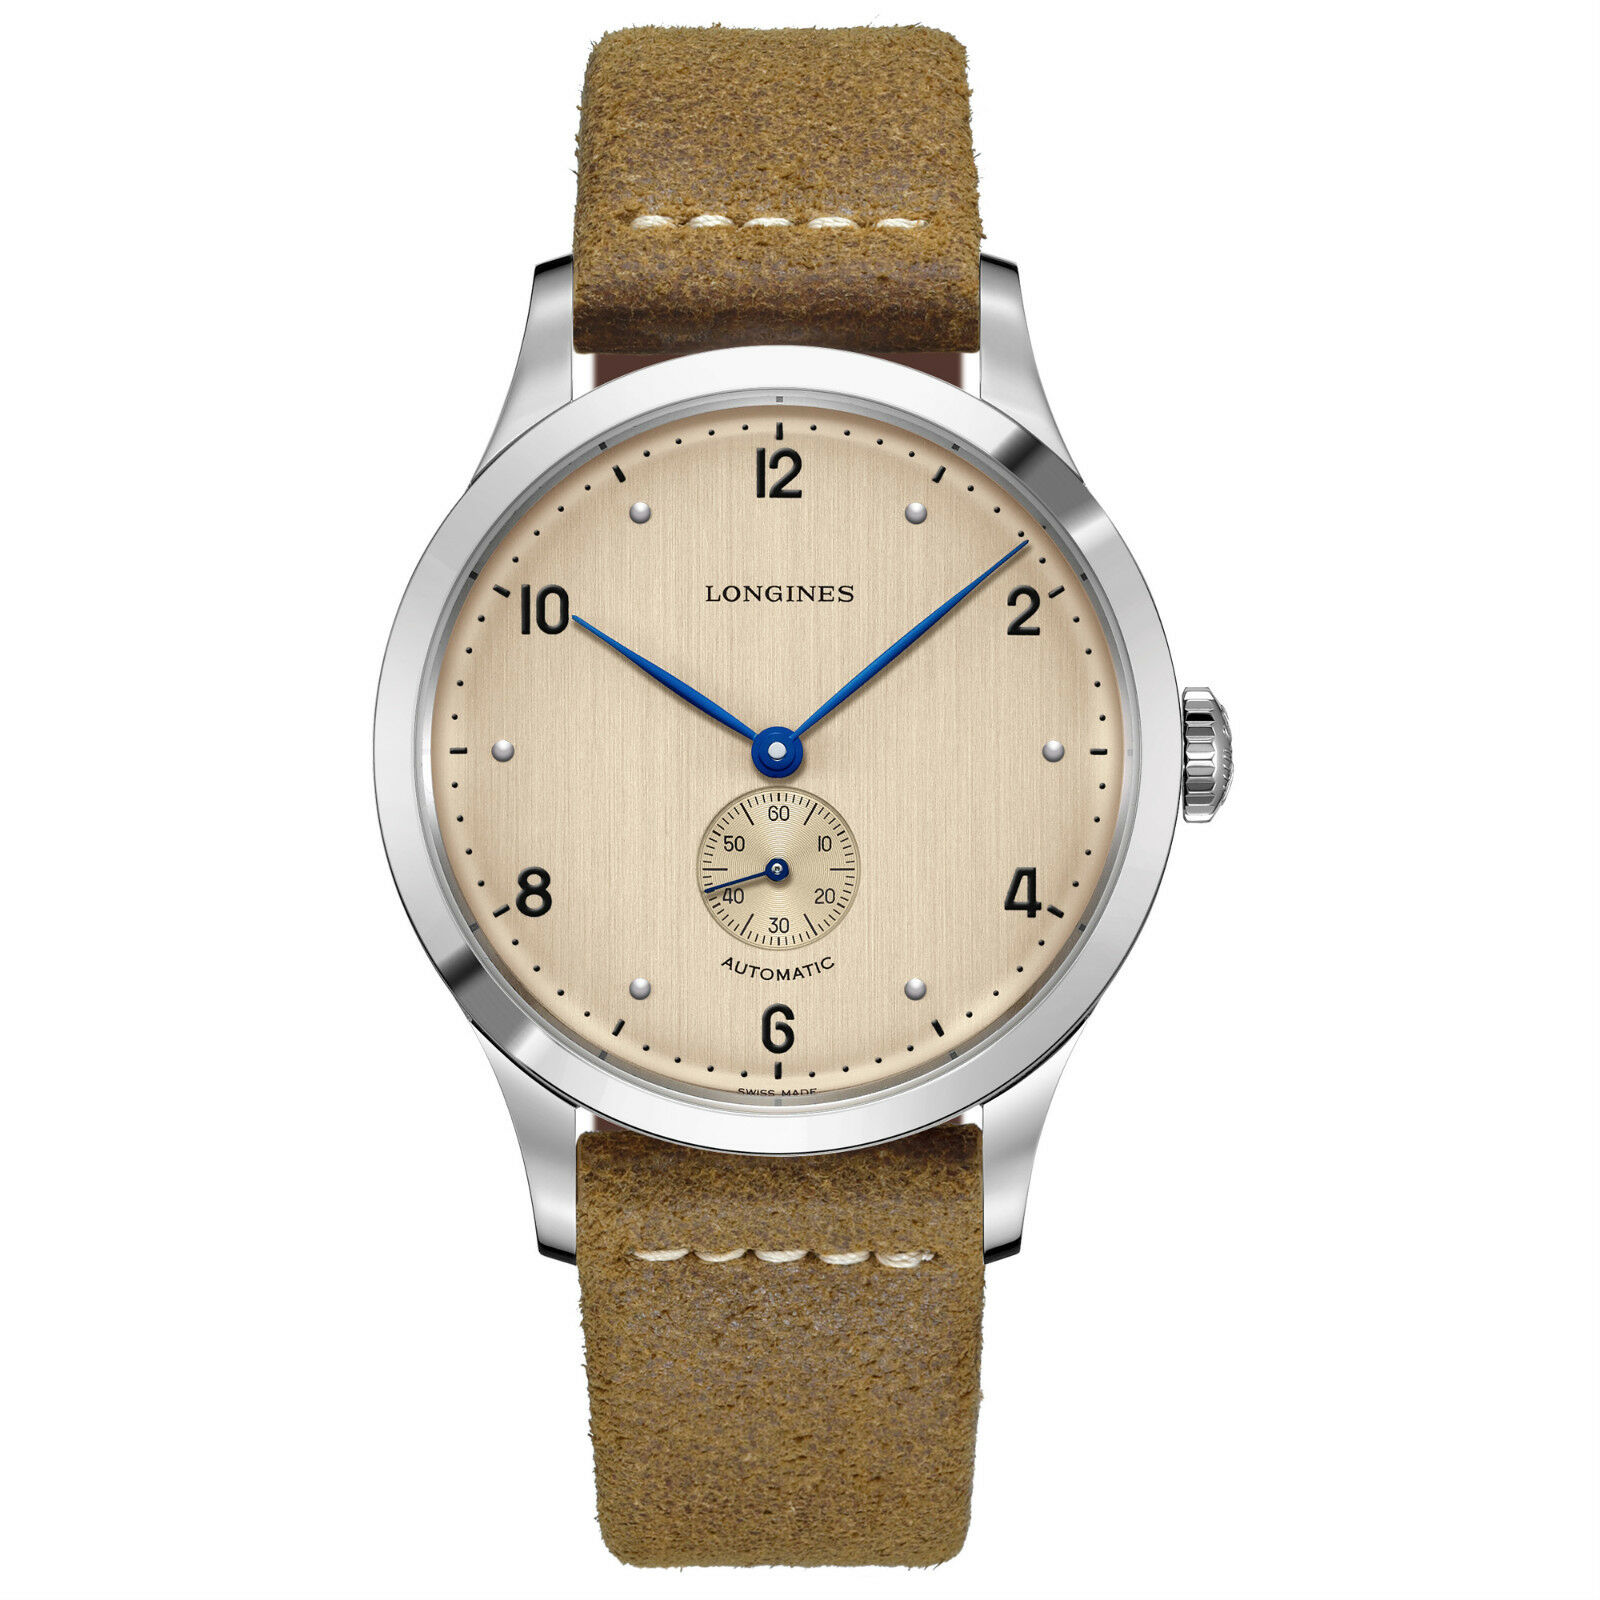 Watch picture 6